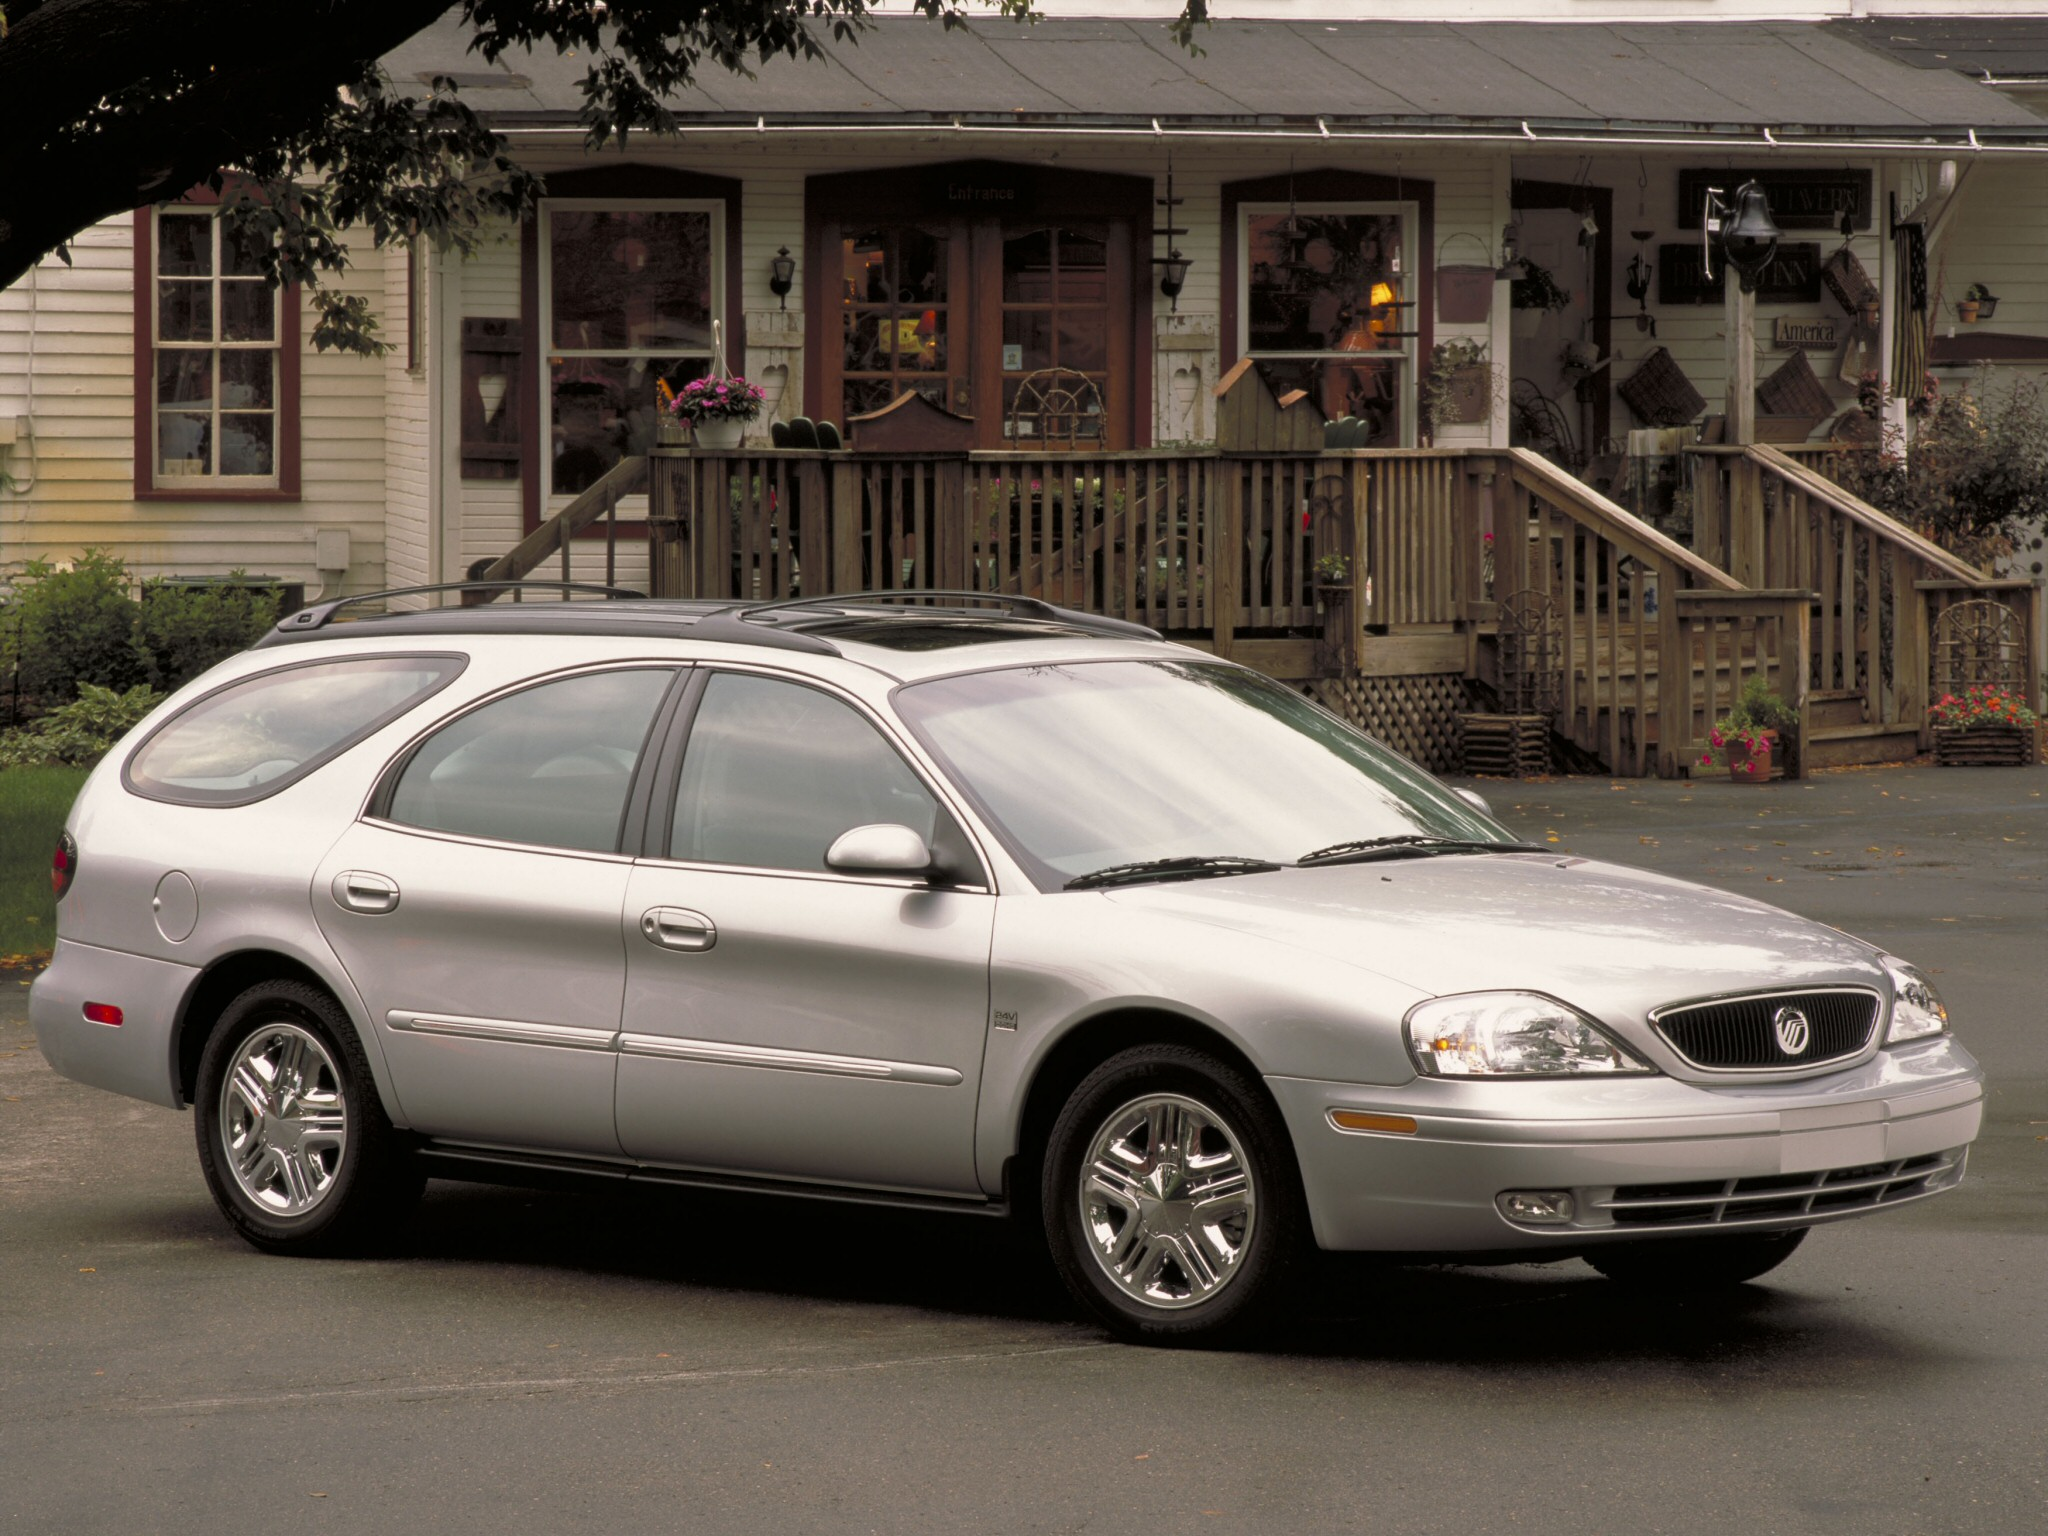 2004 mercury sable station wagon pictures information and specs rh auto  database com 2000 Mercury Sable Wagon 2004 mercury sable station wagon